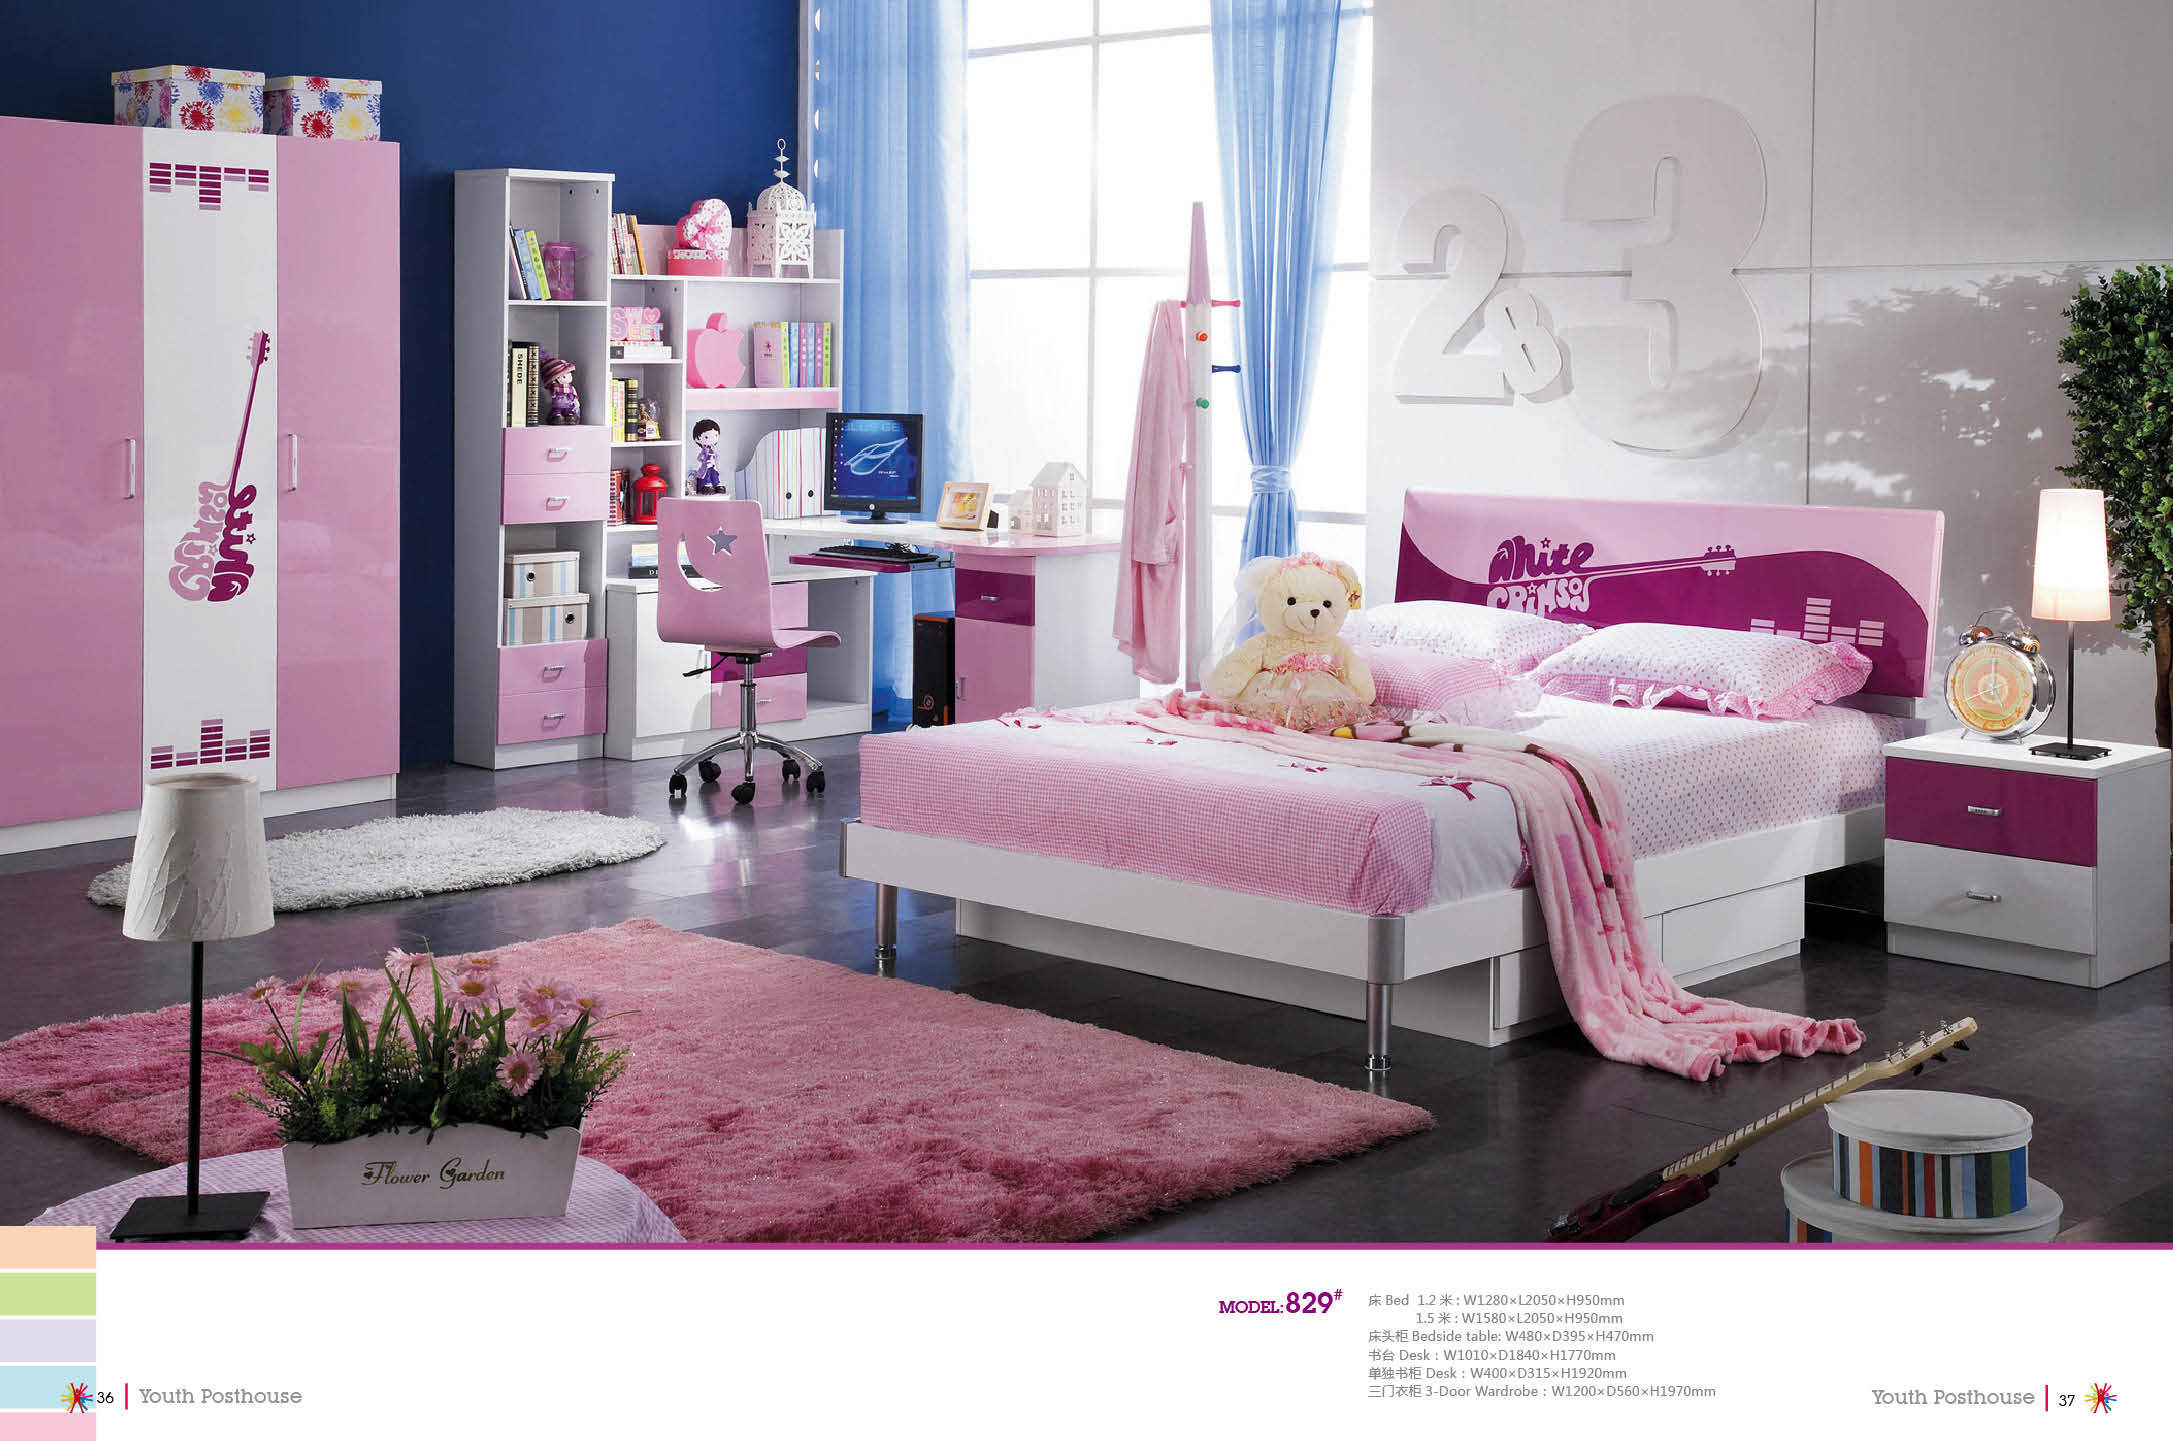 ... Beach Theme Dorm Room Decor. on teen s bedroom furniture sets